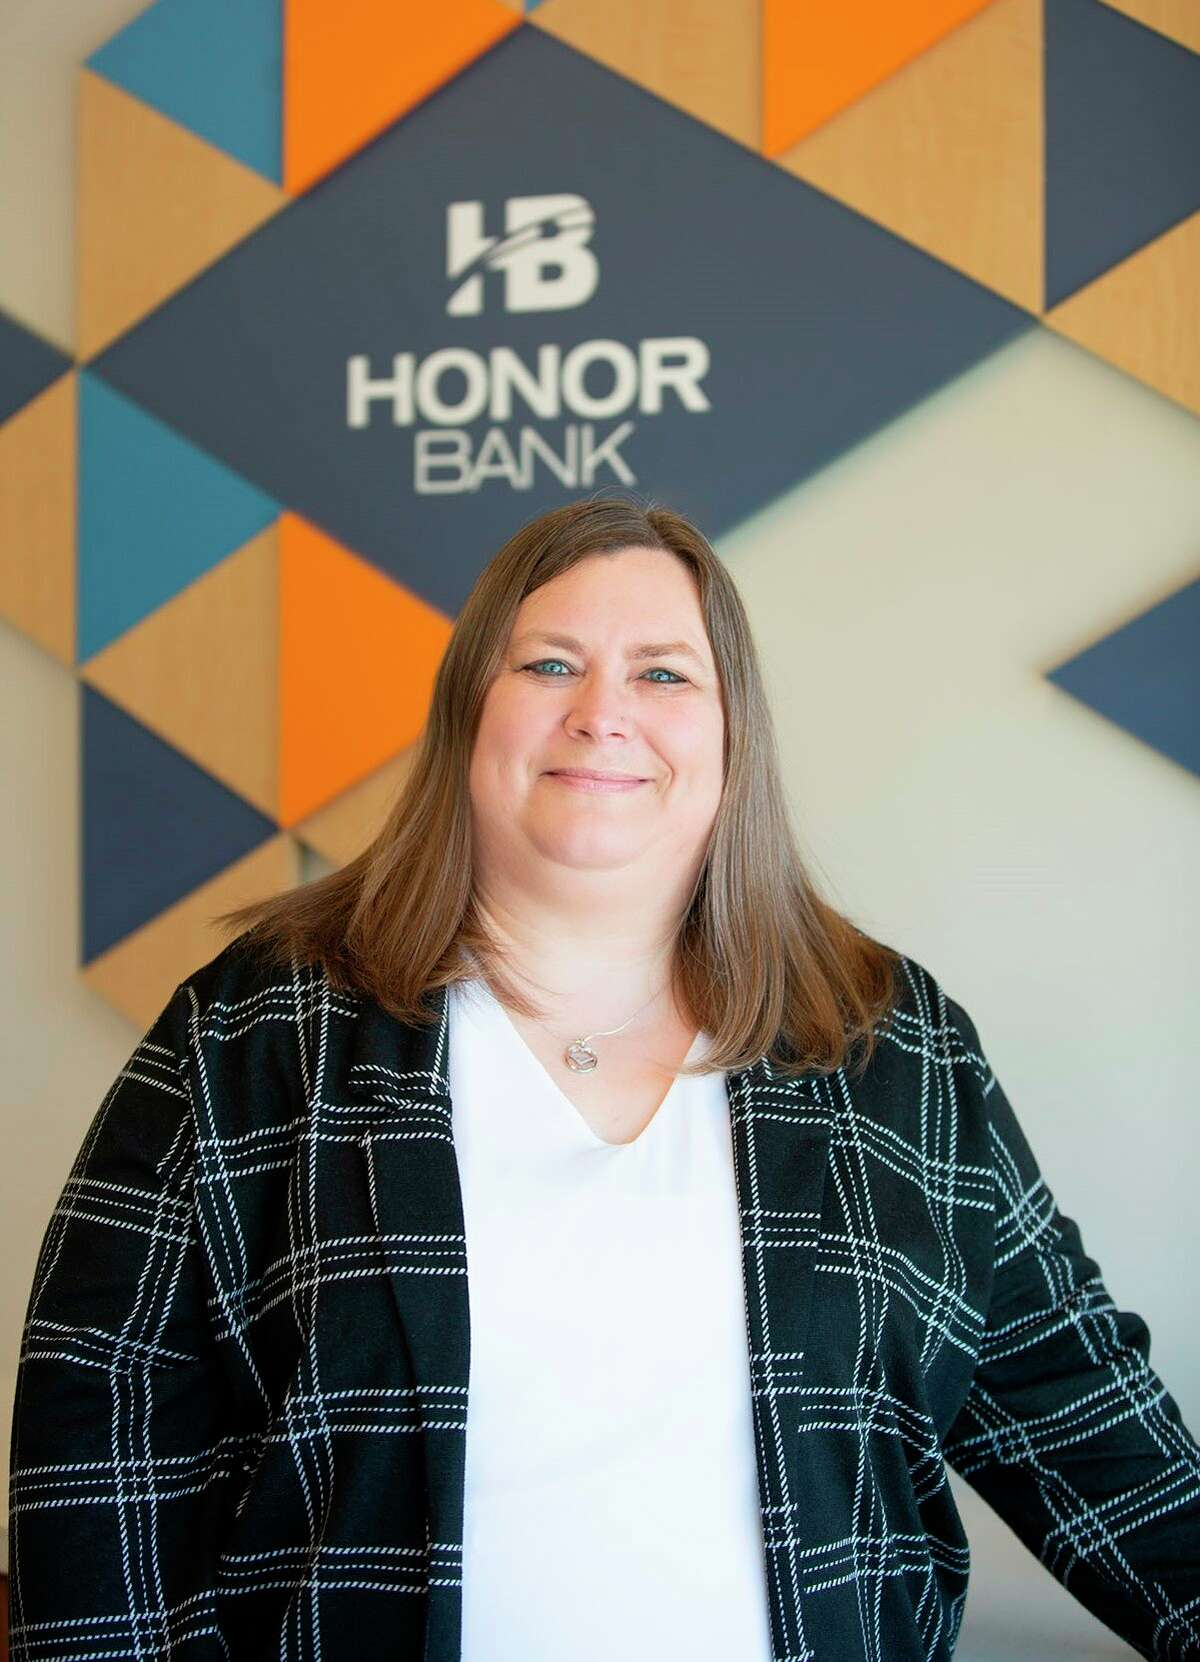 Mary Wisxon, Copemish branch manager of Honor Bank, was named the 2020 Honor Bank Employee of the Year. (Courtesy photo)